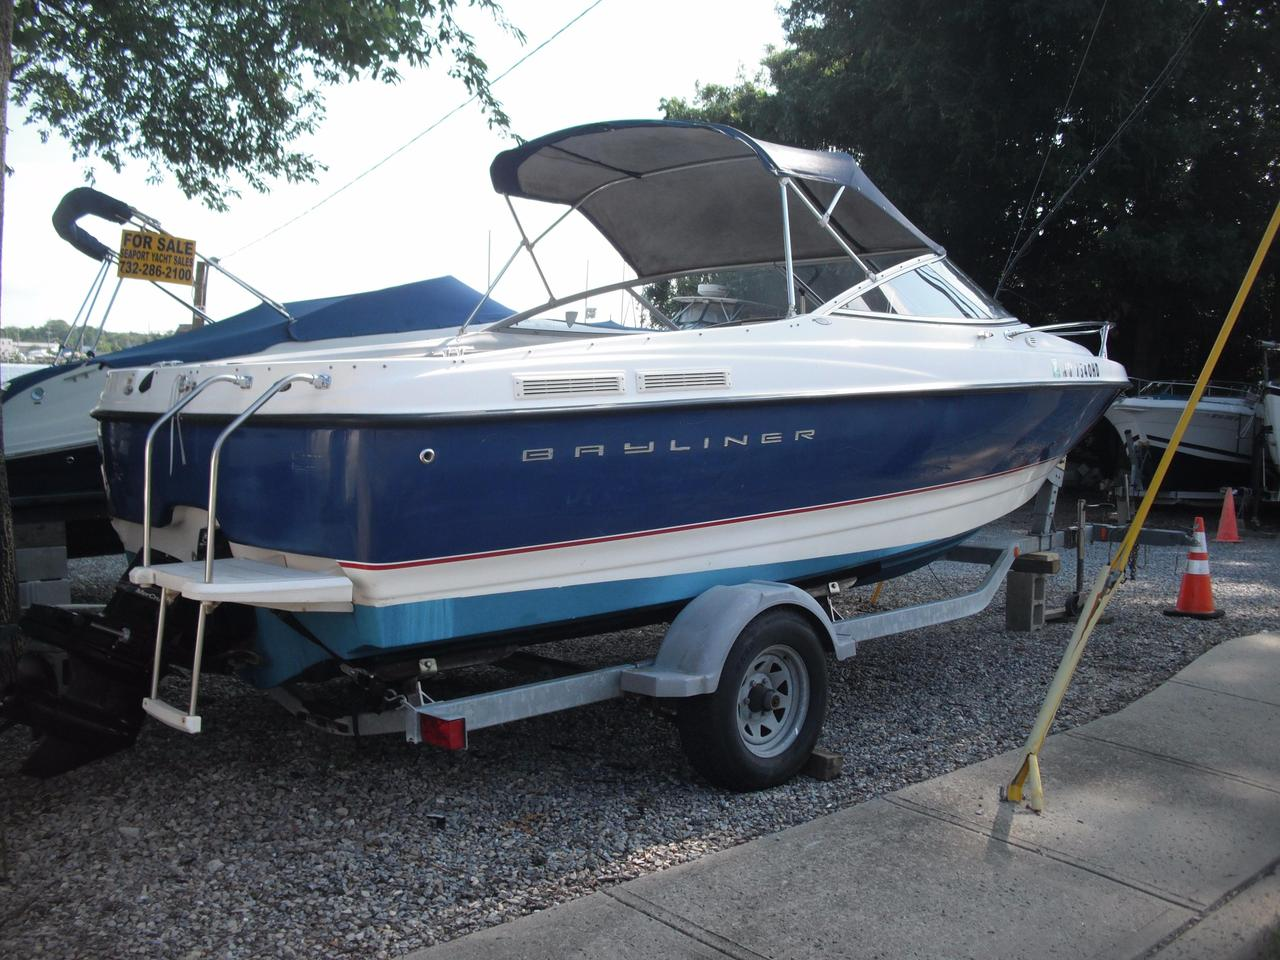 2005 Used Bayliner 210 Cuddy Cabin Boat For Sale - $13,900